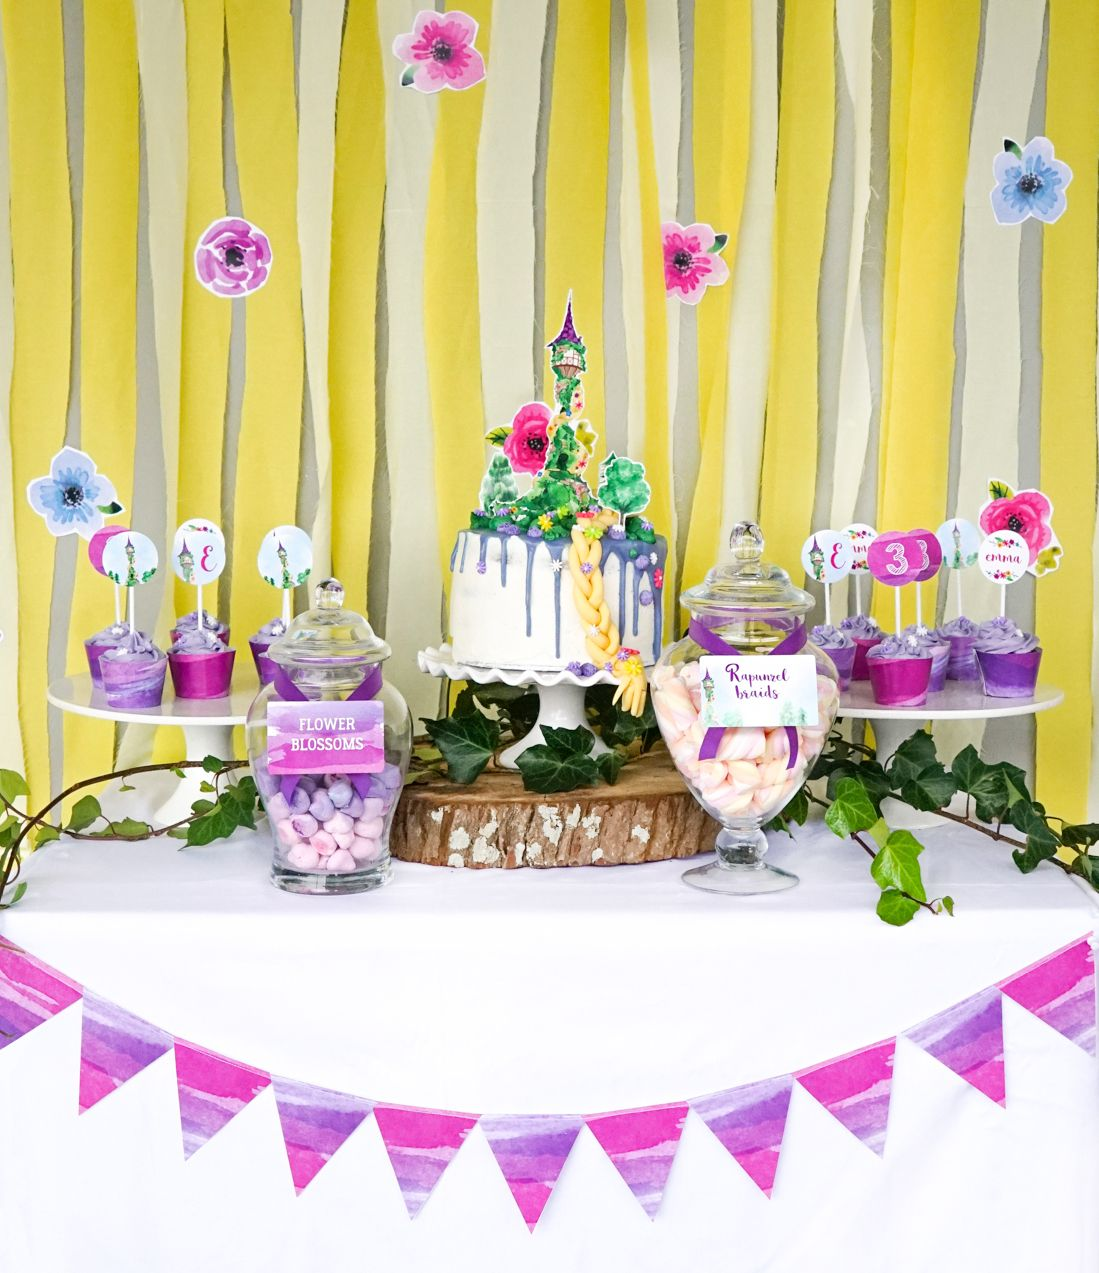 Pretty party set up for a Rapunzel party!  sc 1 st  Pinterest & Pretty party set up for a Rapunzel party! | Girls Party Ideas ...